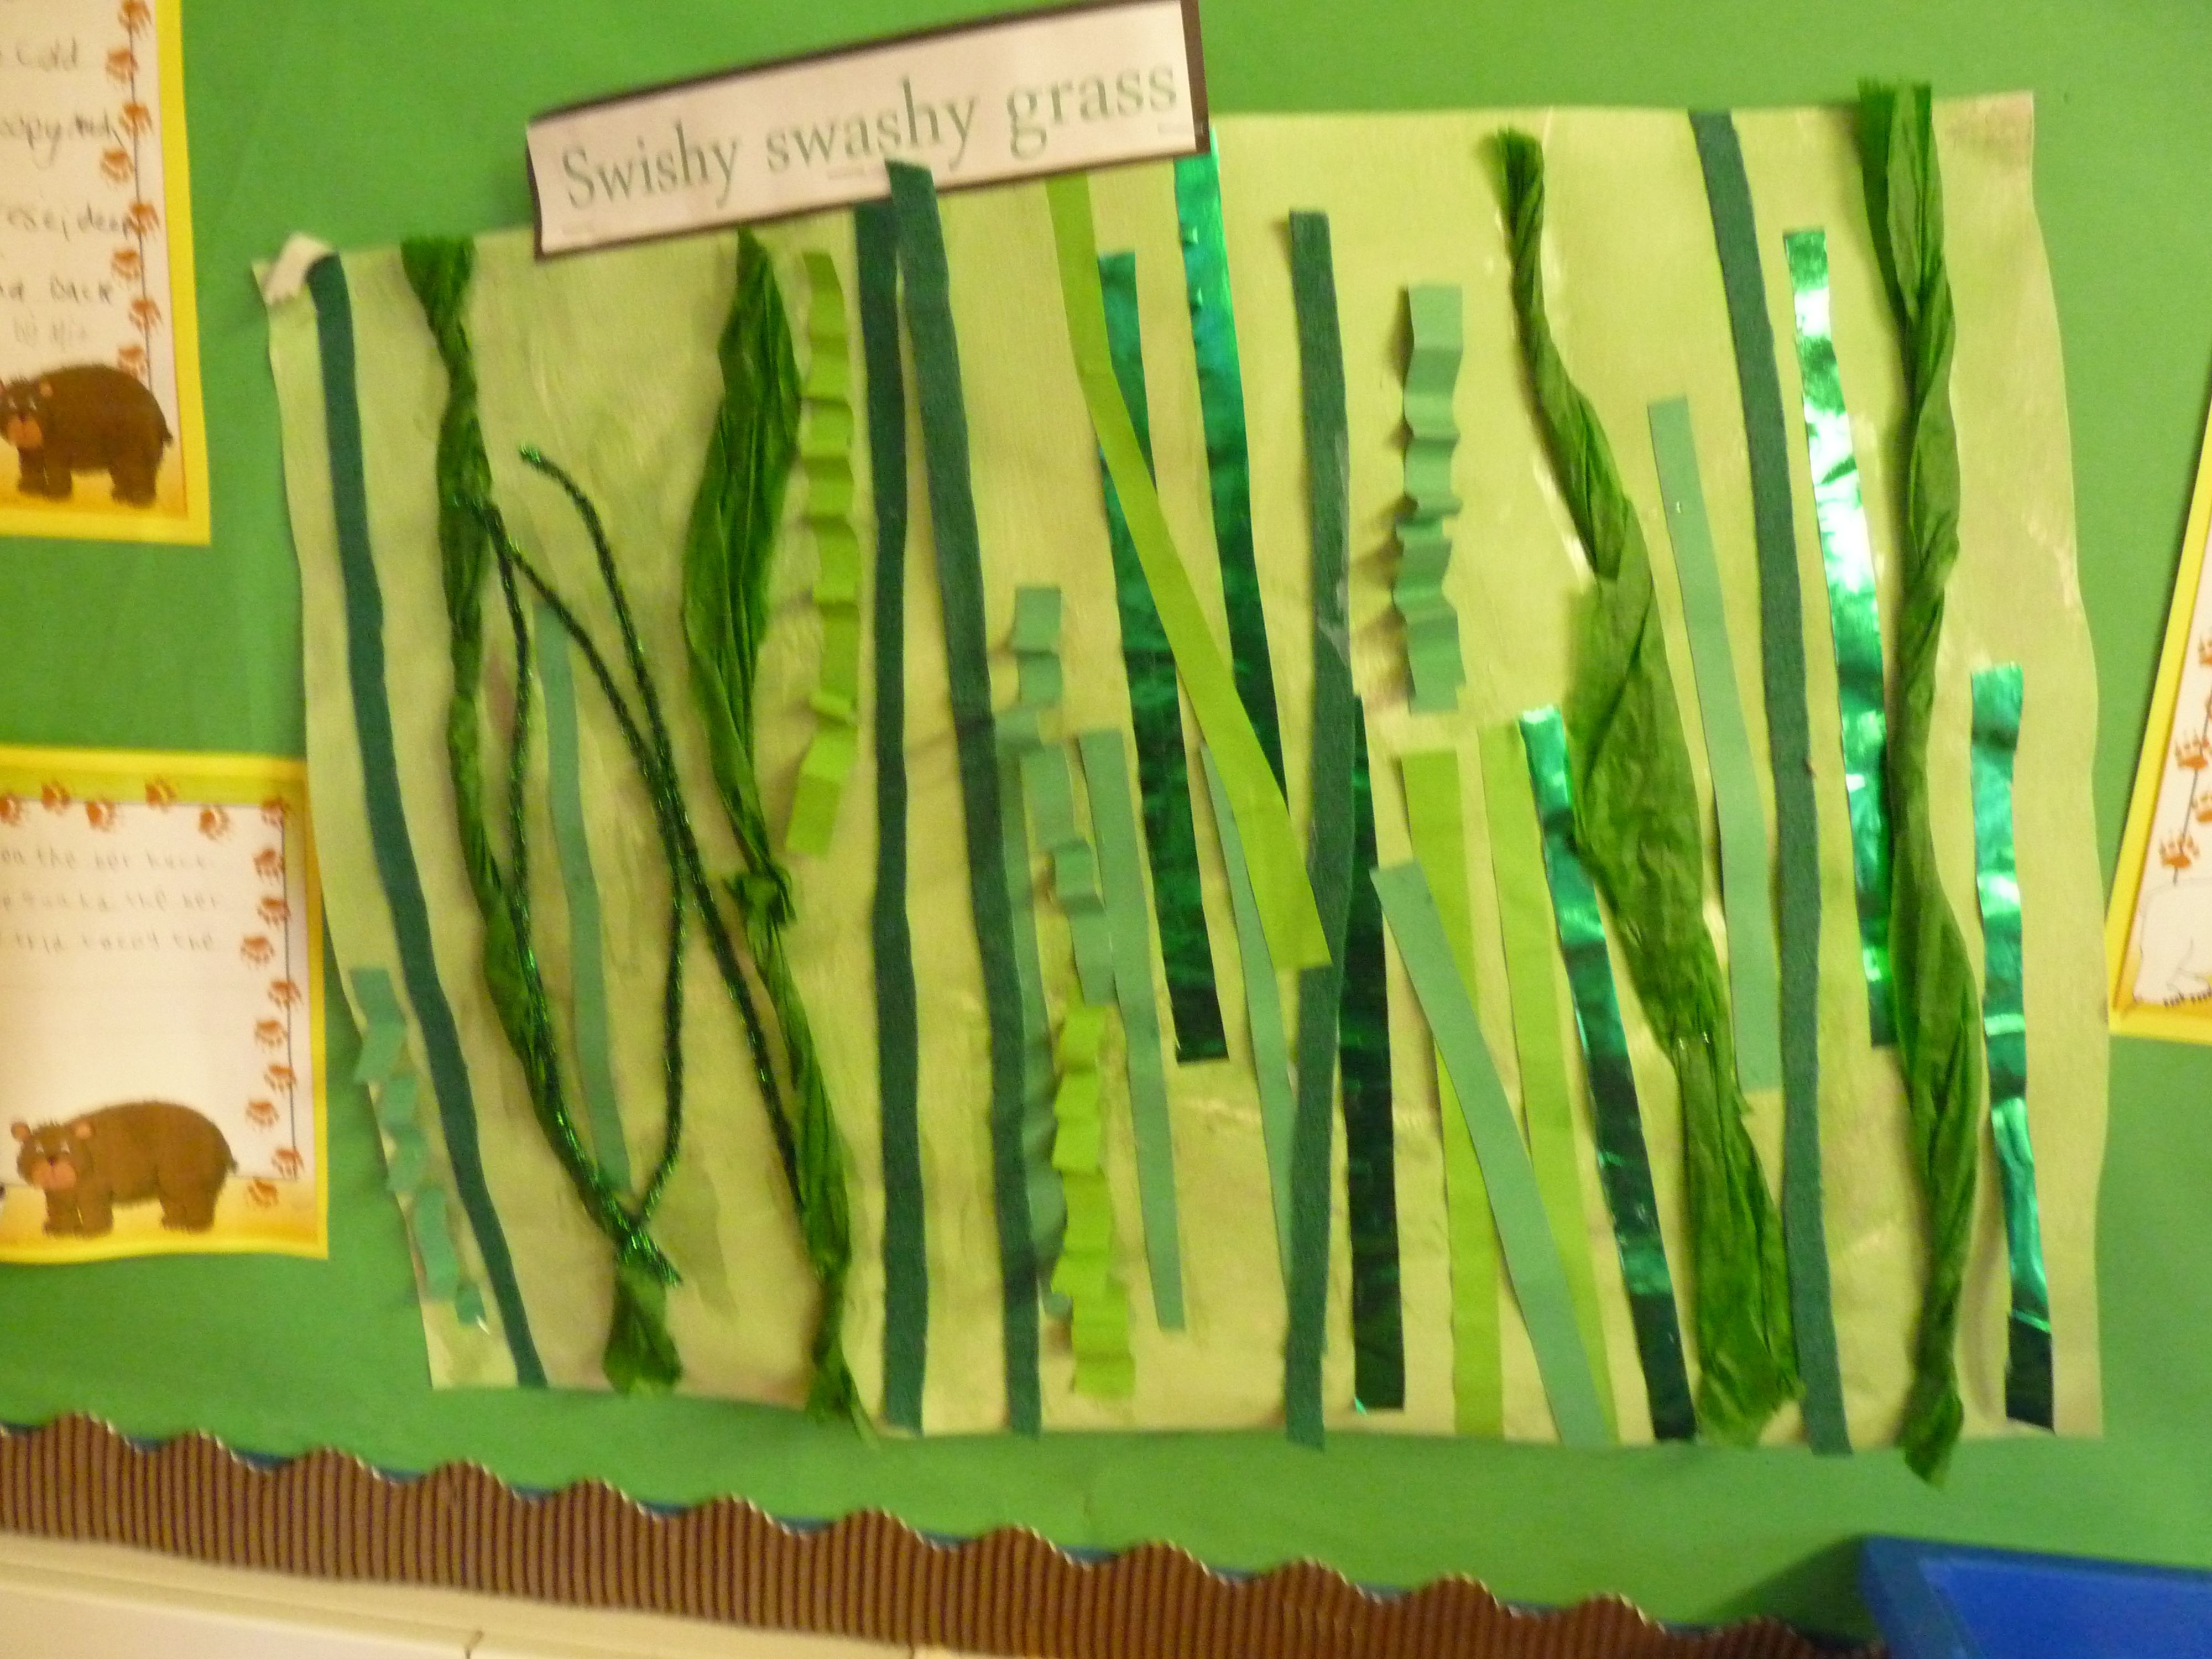 We Re Going On A Bear Hunt Swishy Grass Collage As Part Of Larger Display